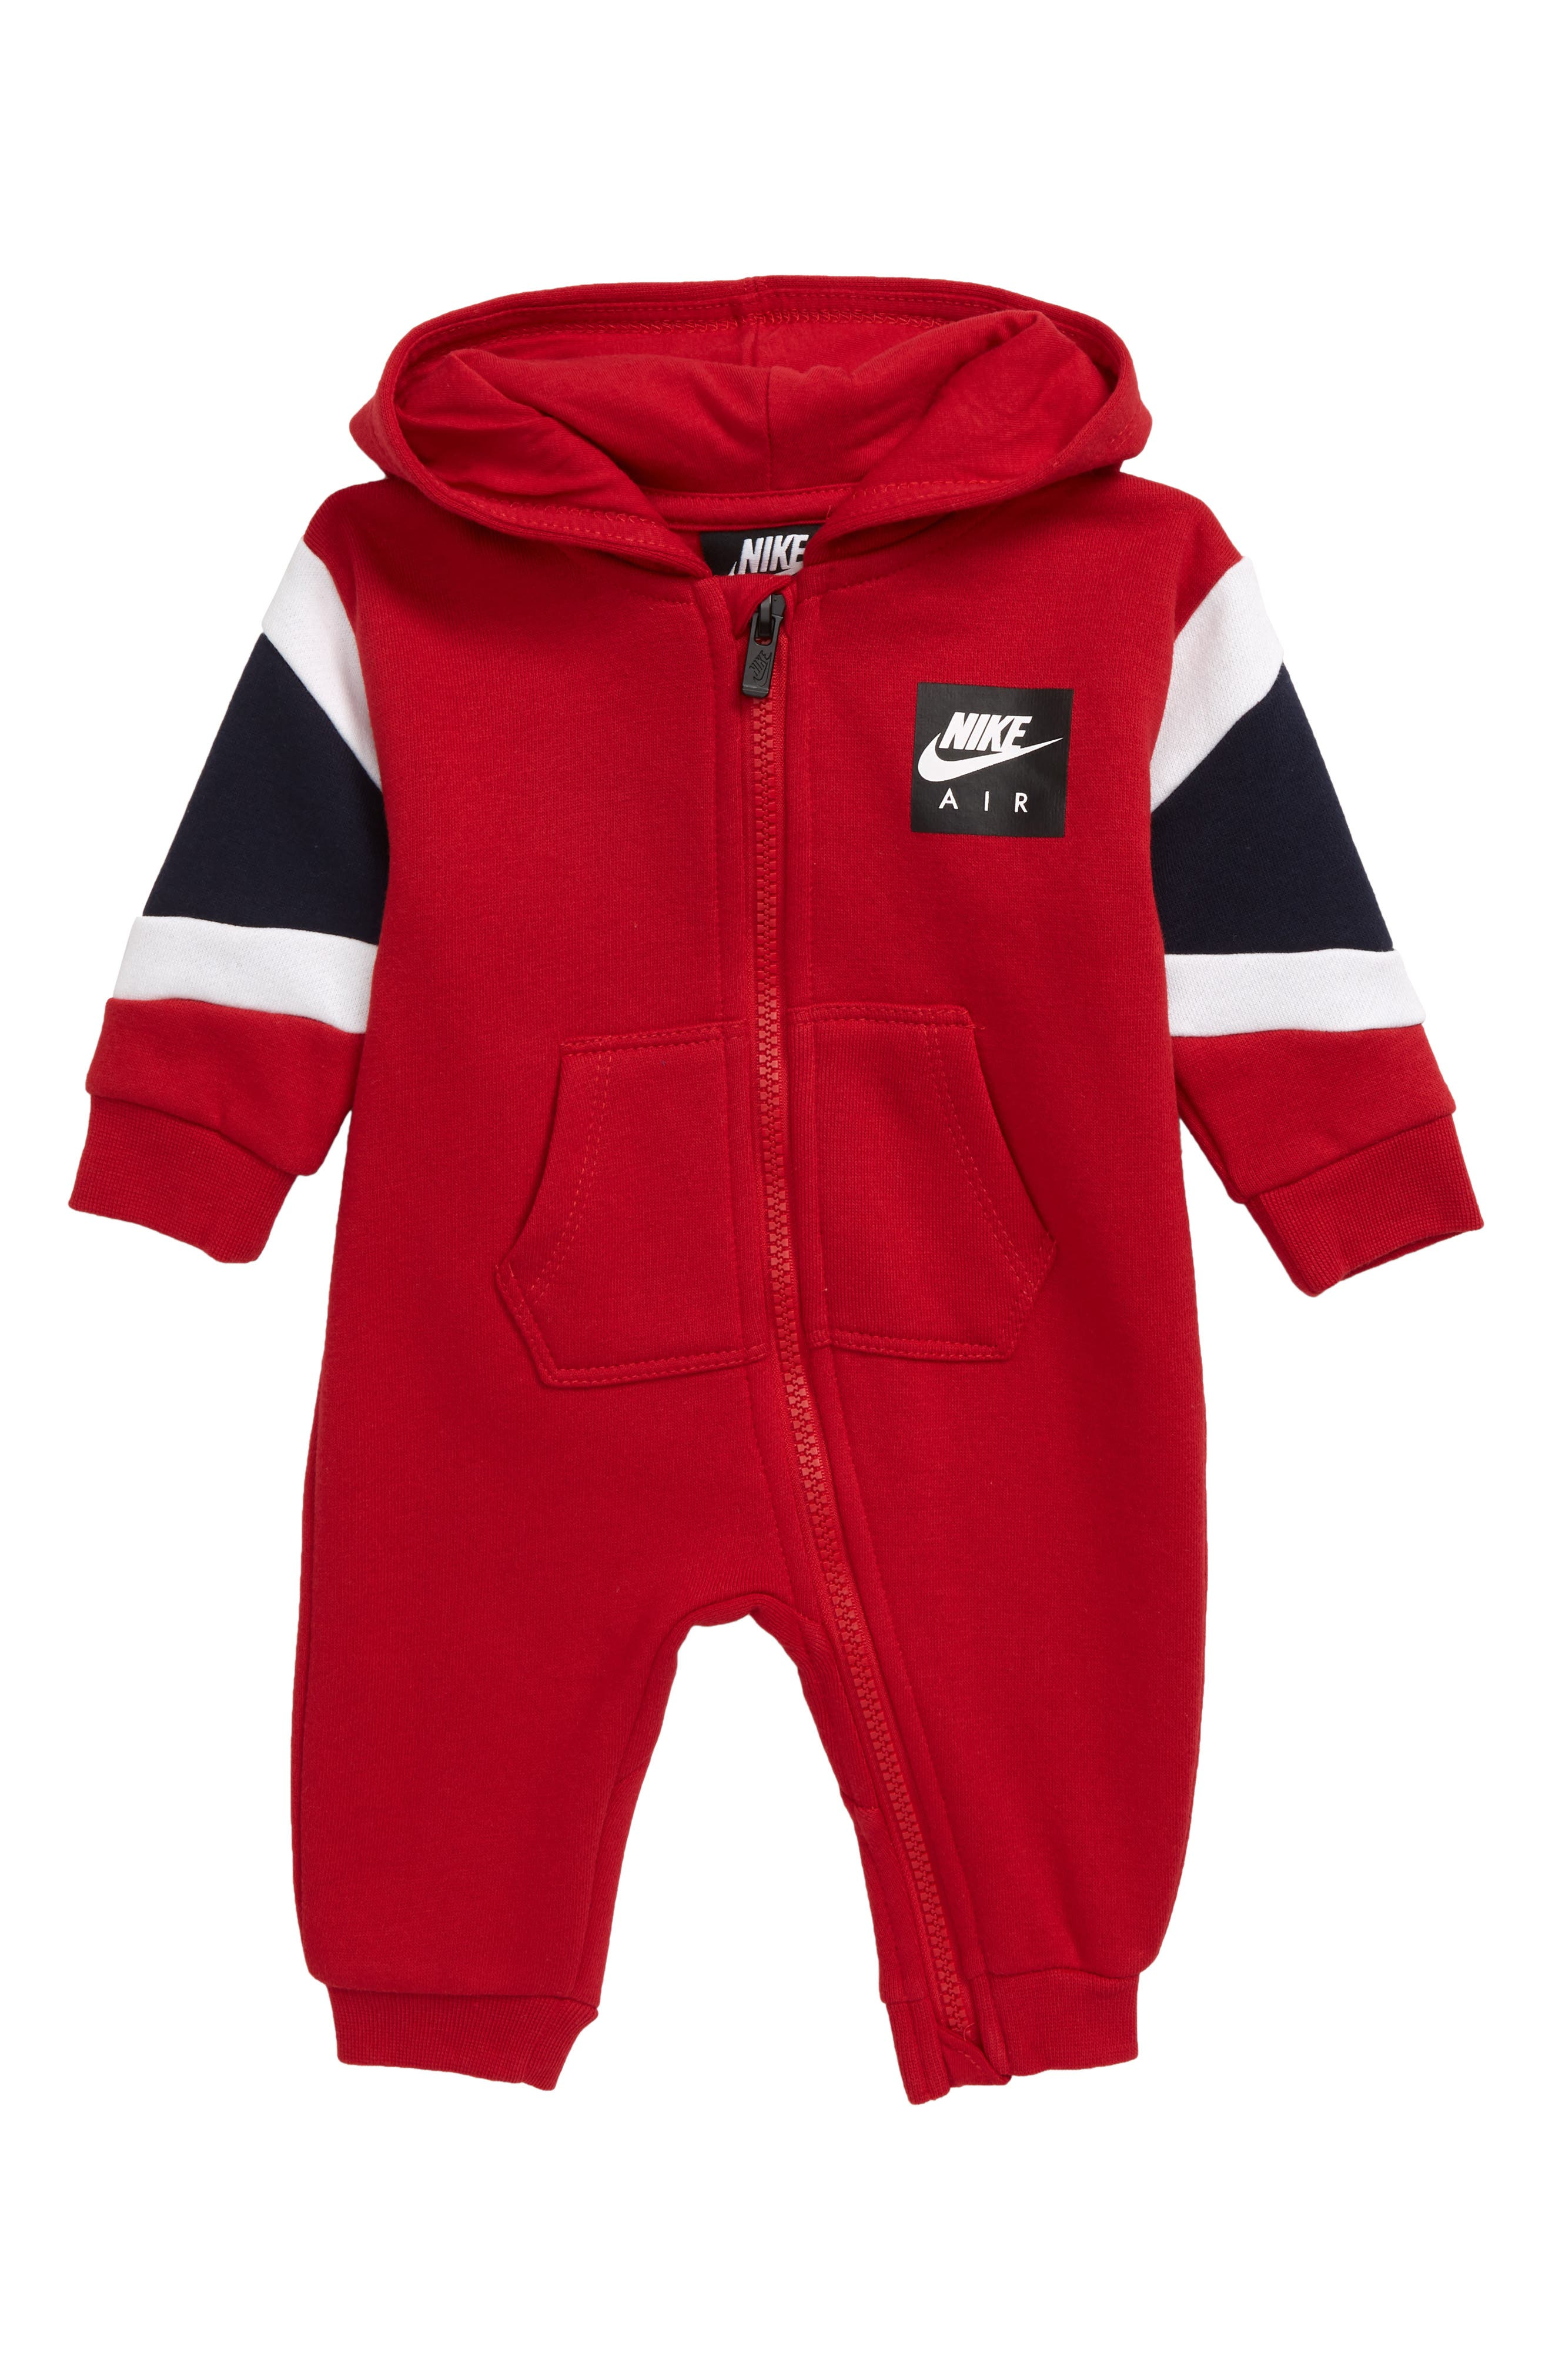 7865a05b6 Nike Baby Clothing   Nordstrom